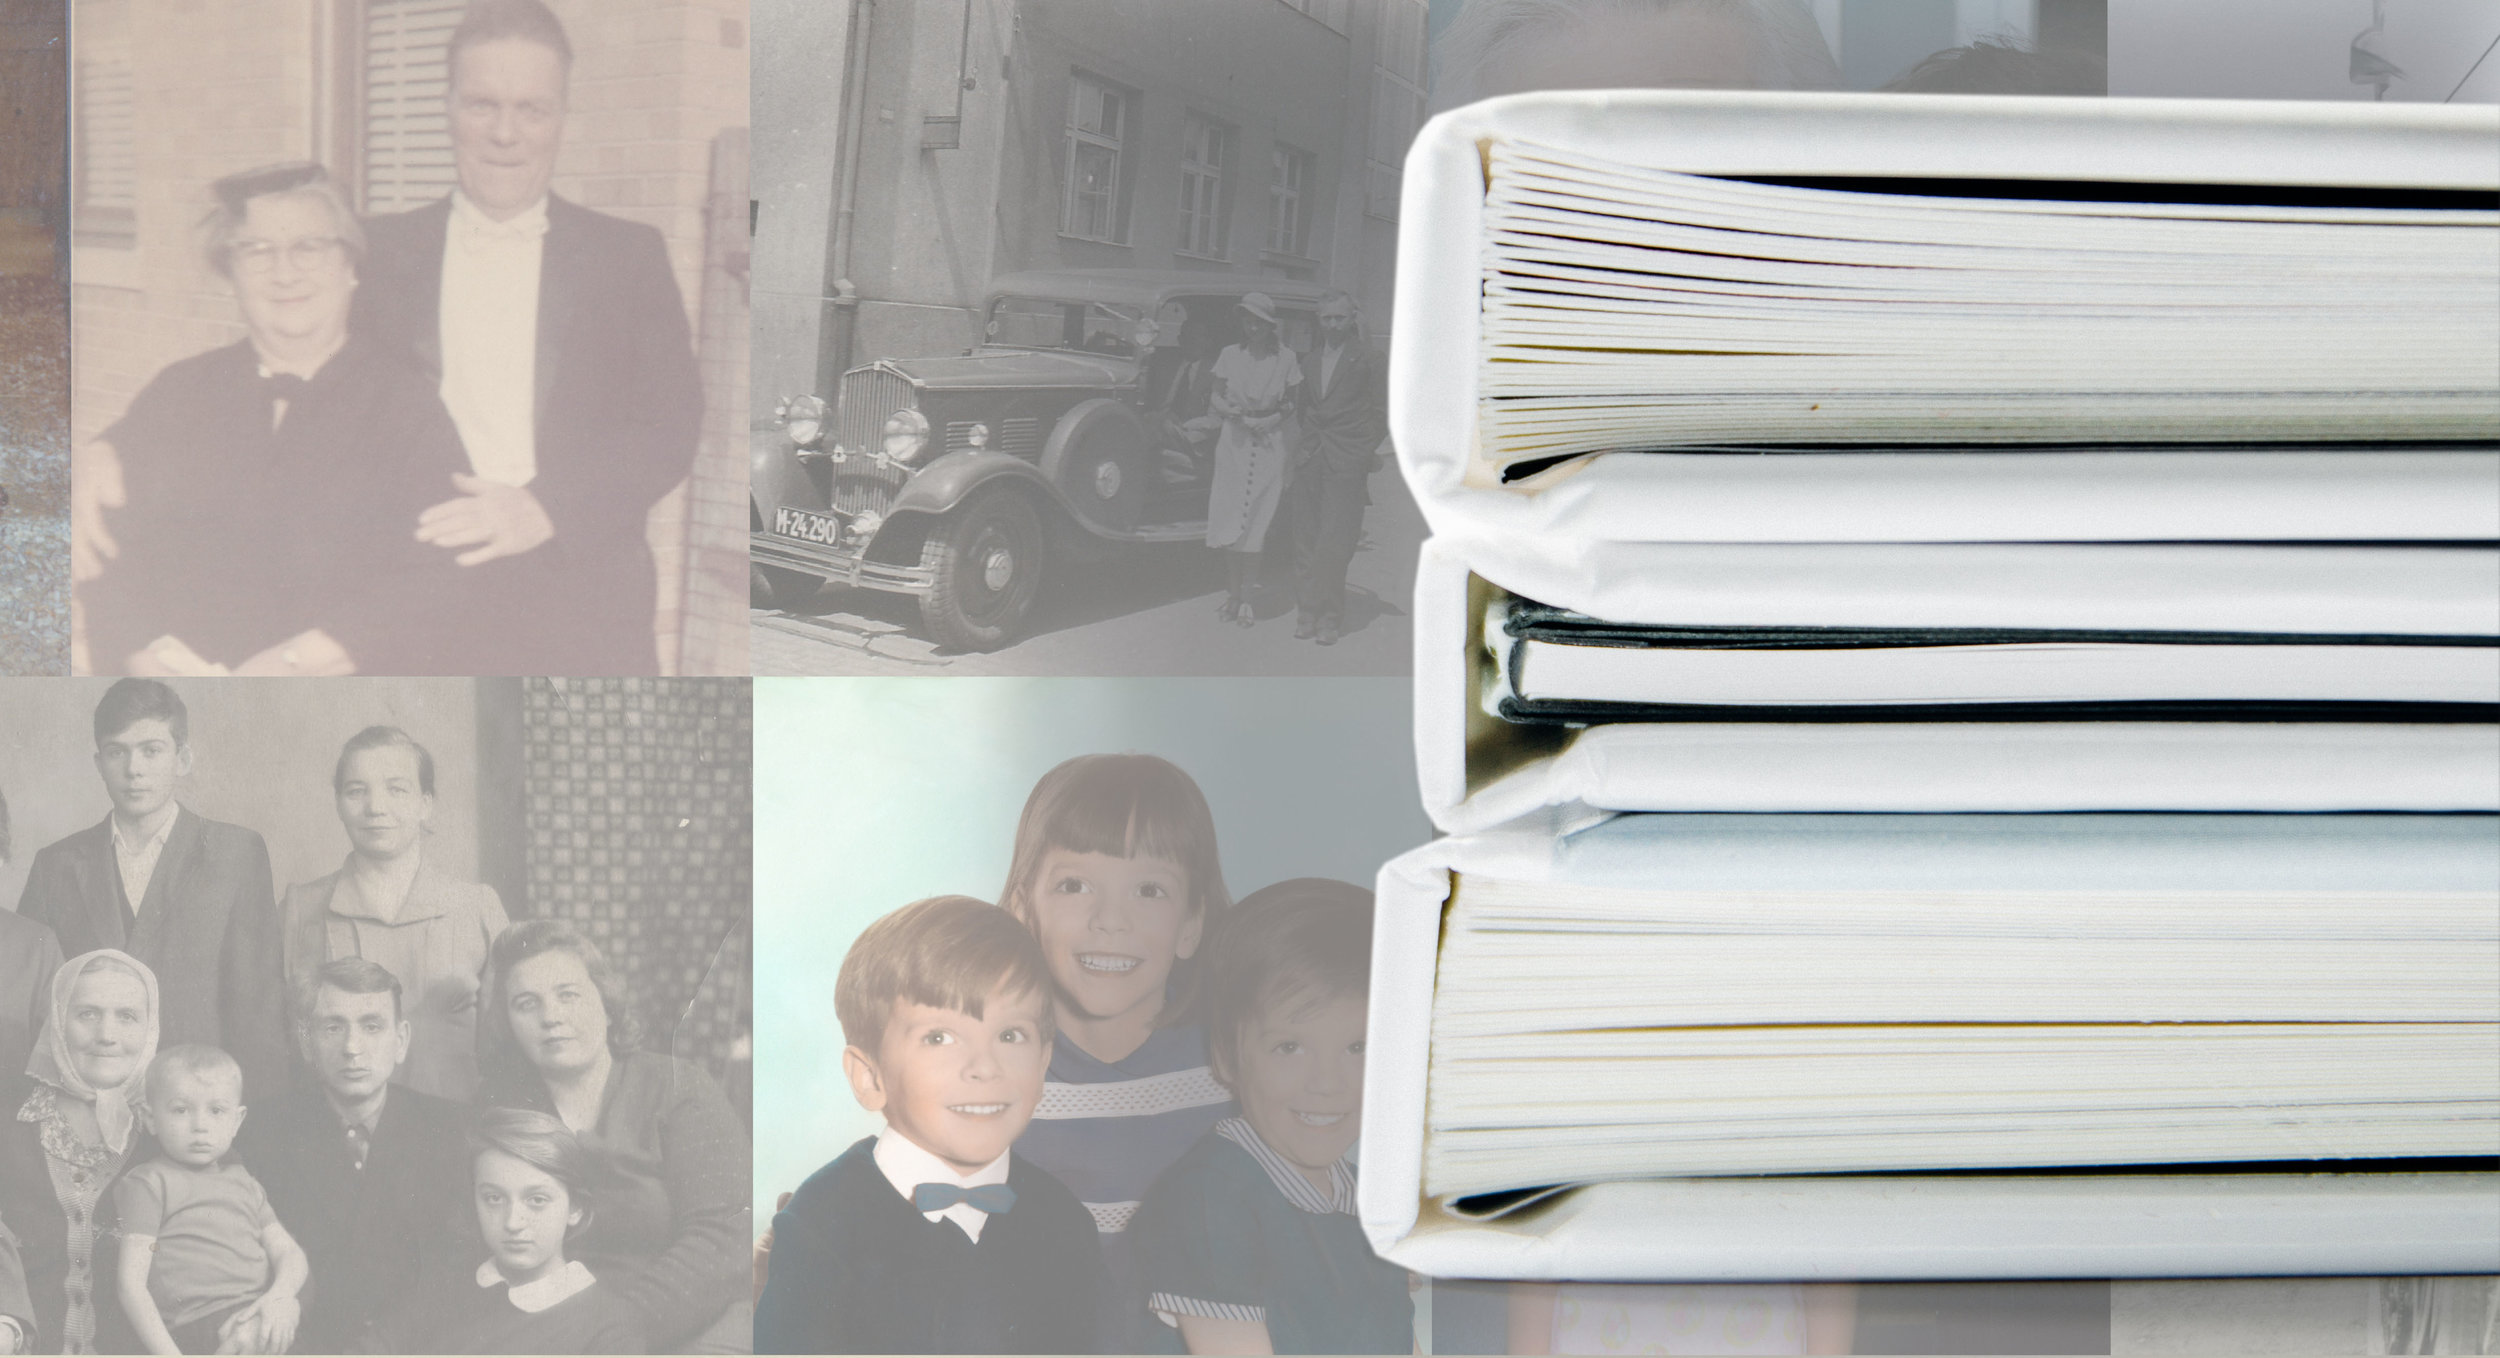 privately published tribute memory books often include old family photos and other pictures of the deceased